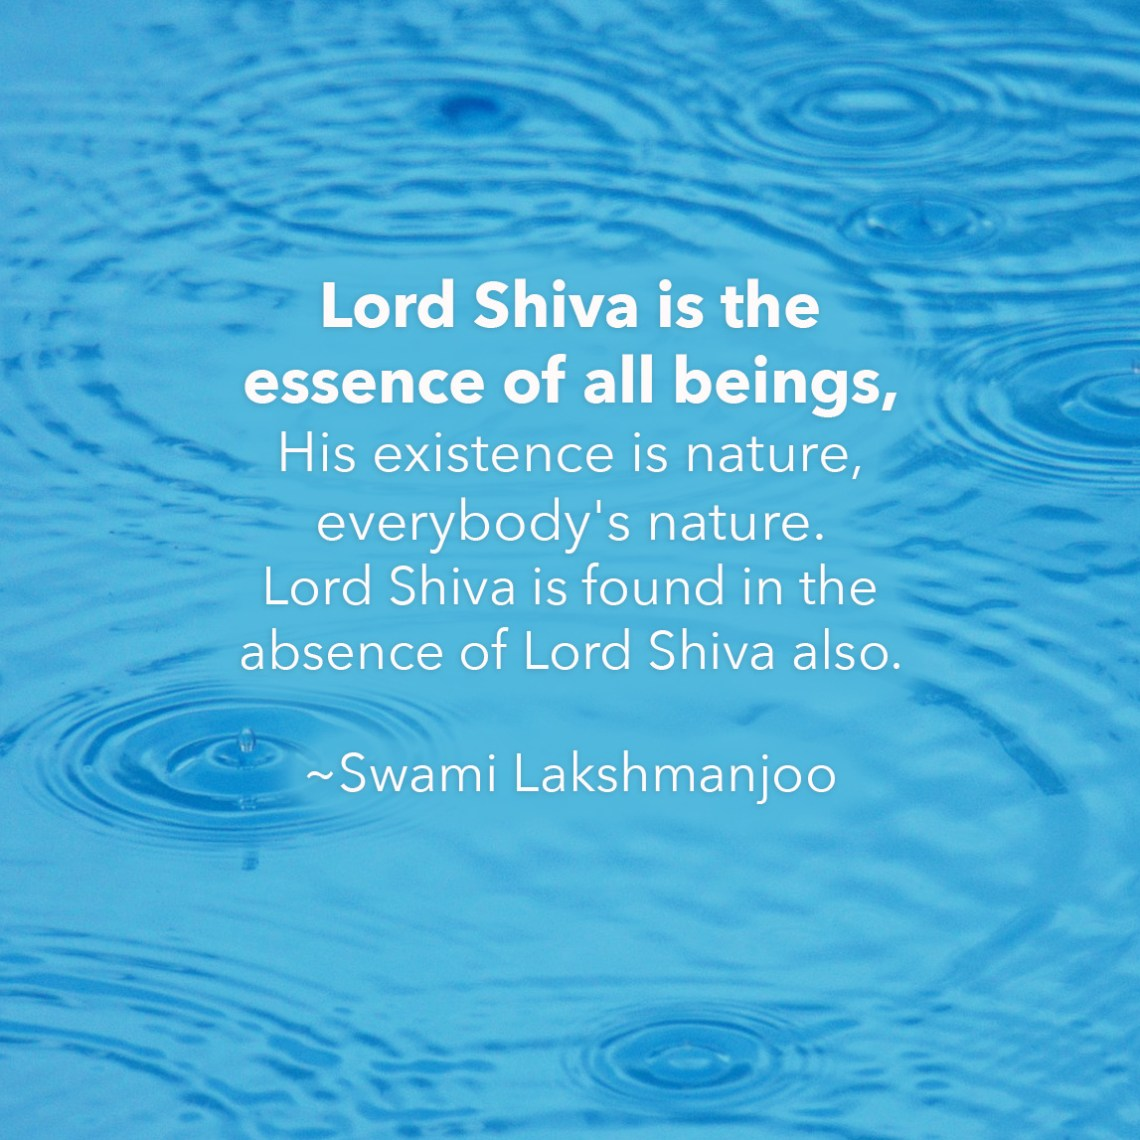 Lord Shiva is the essence of all beings, His existence is nature, everybody's nature. Lord Shiva is found in the absence of Lord Shiva also. ~Swami Lakshmanjoo